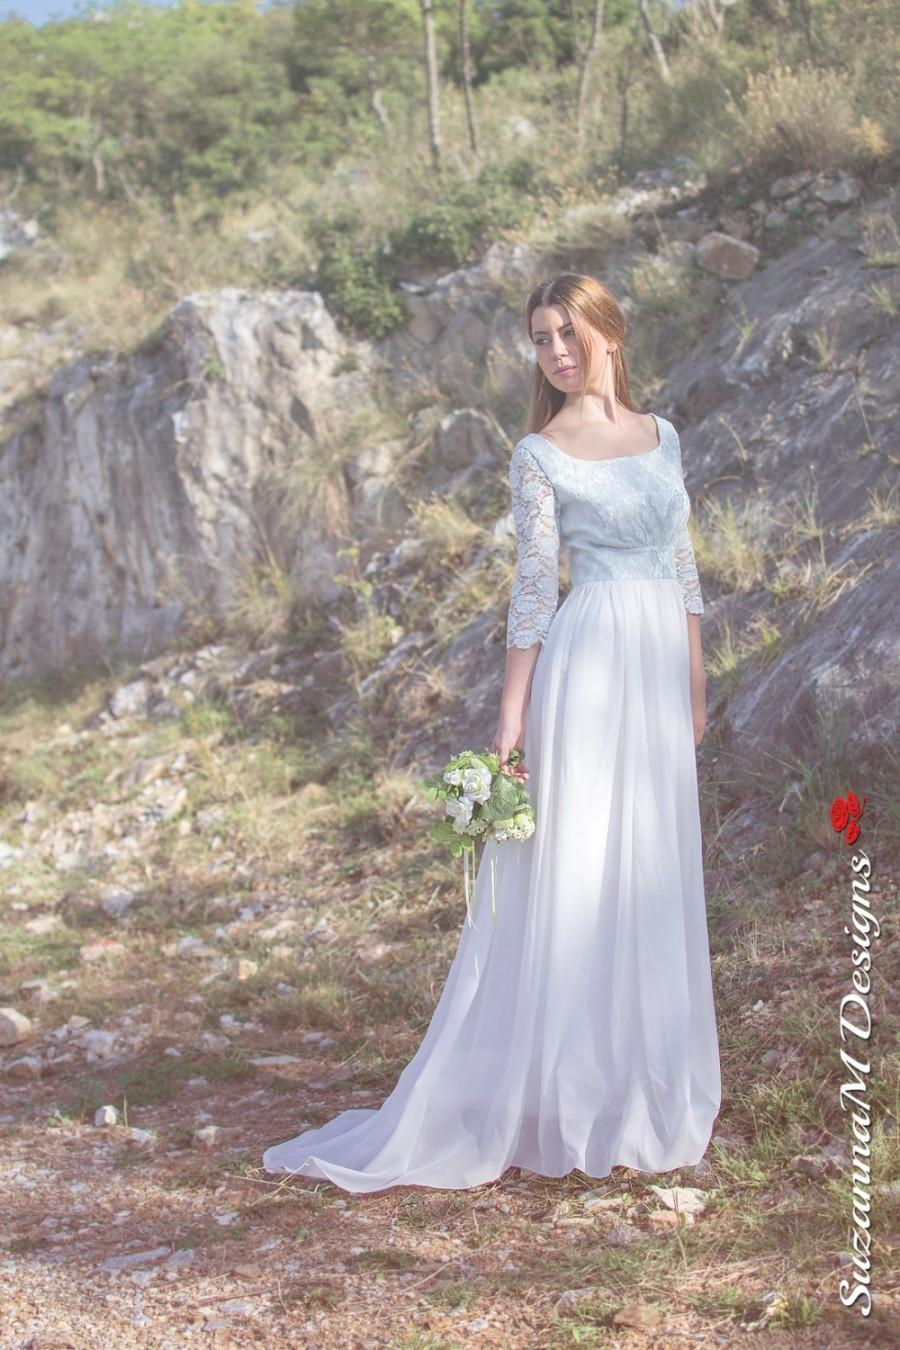 Wedding - Long Wedding Dress, 50s Wedding Gown, White Bridal Dress, Blue Lace Dress, Chiffon Wedding Gown, Long Bidal Dress, Handmade Wedding Dress